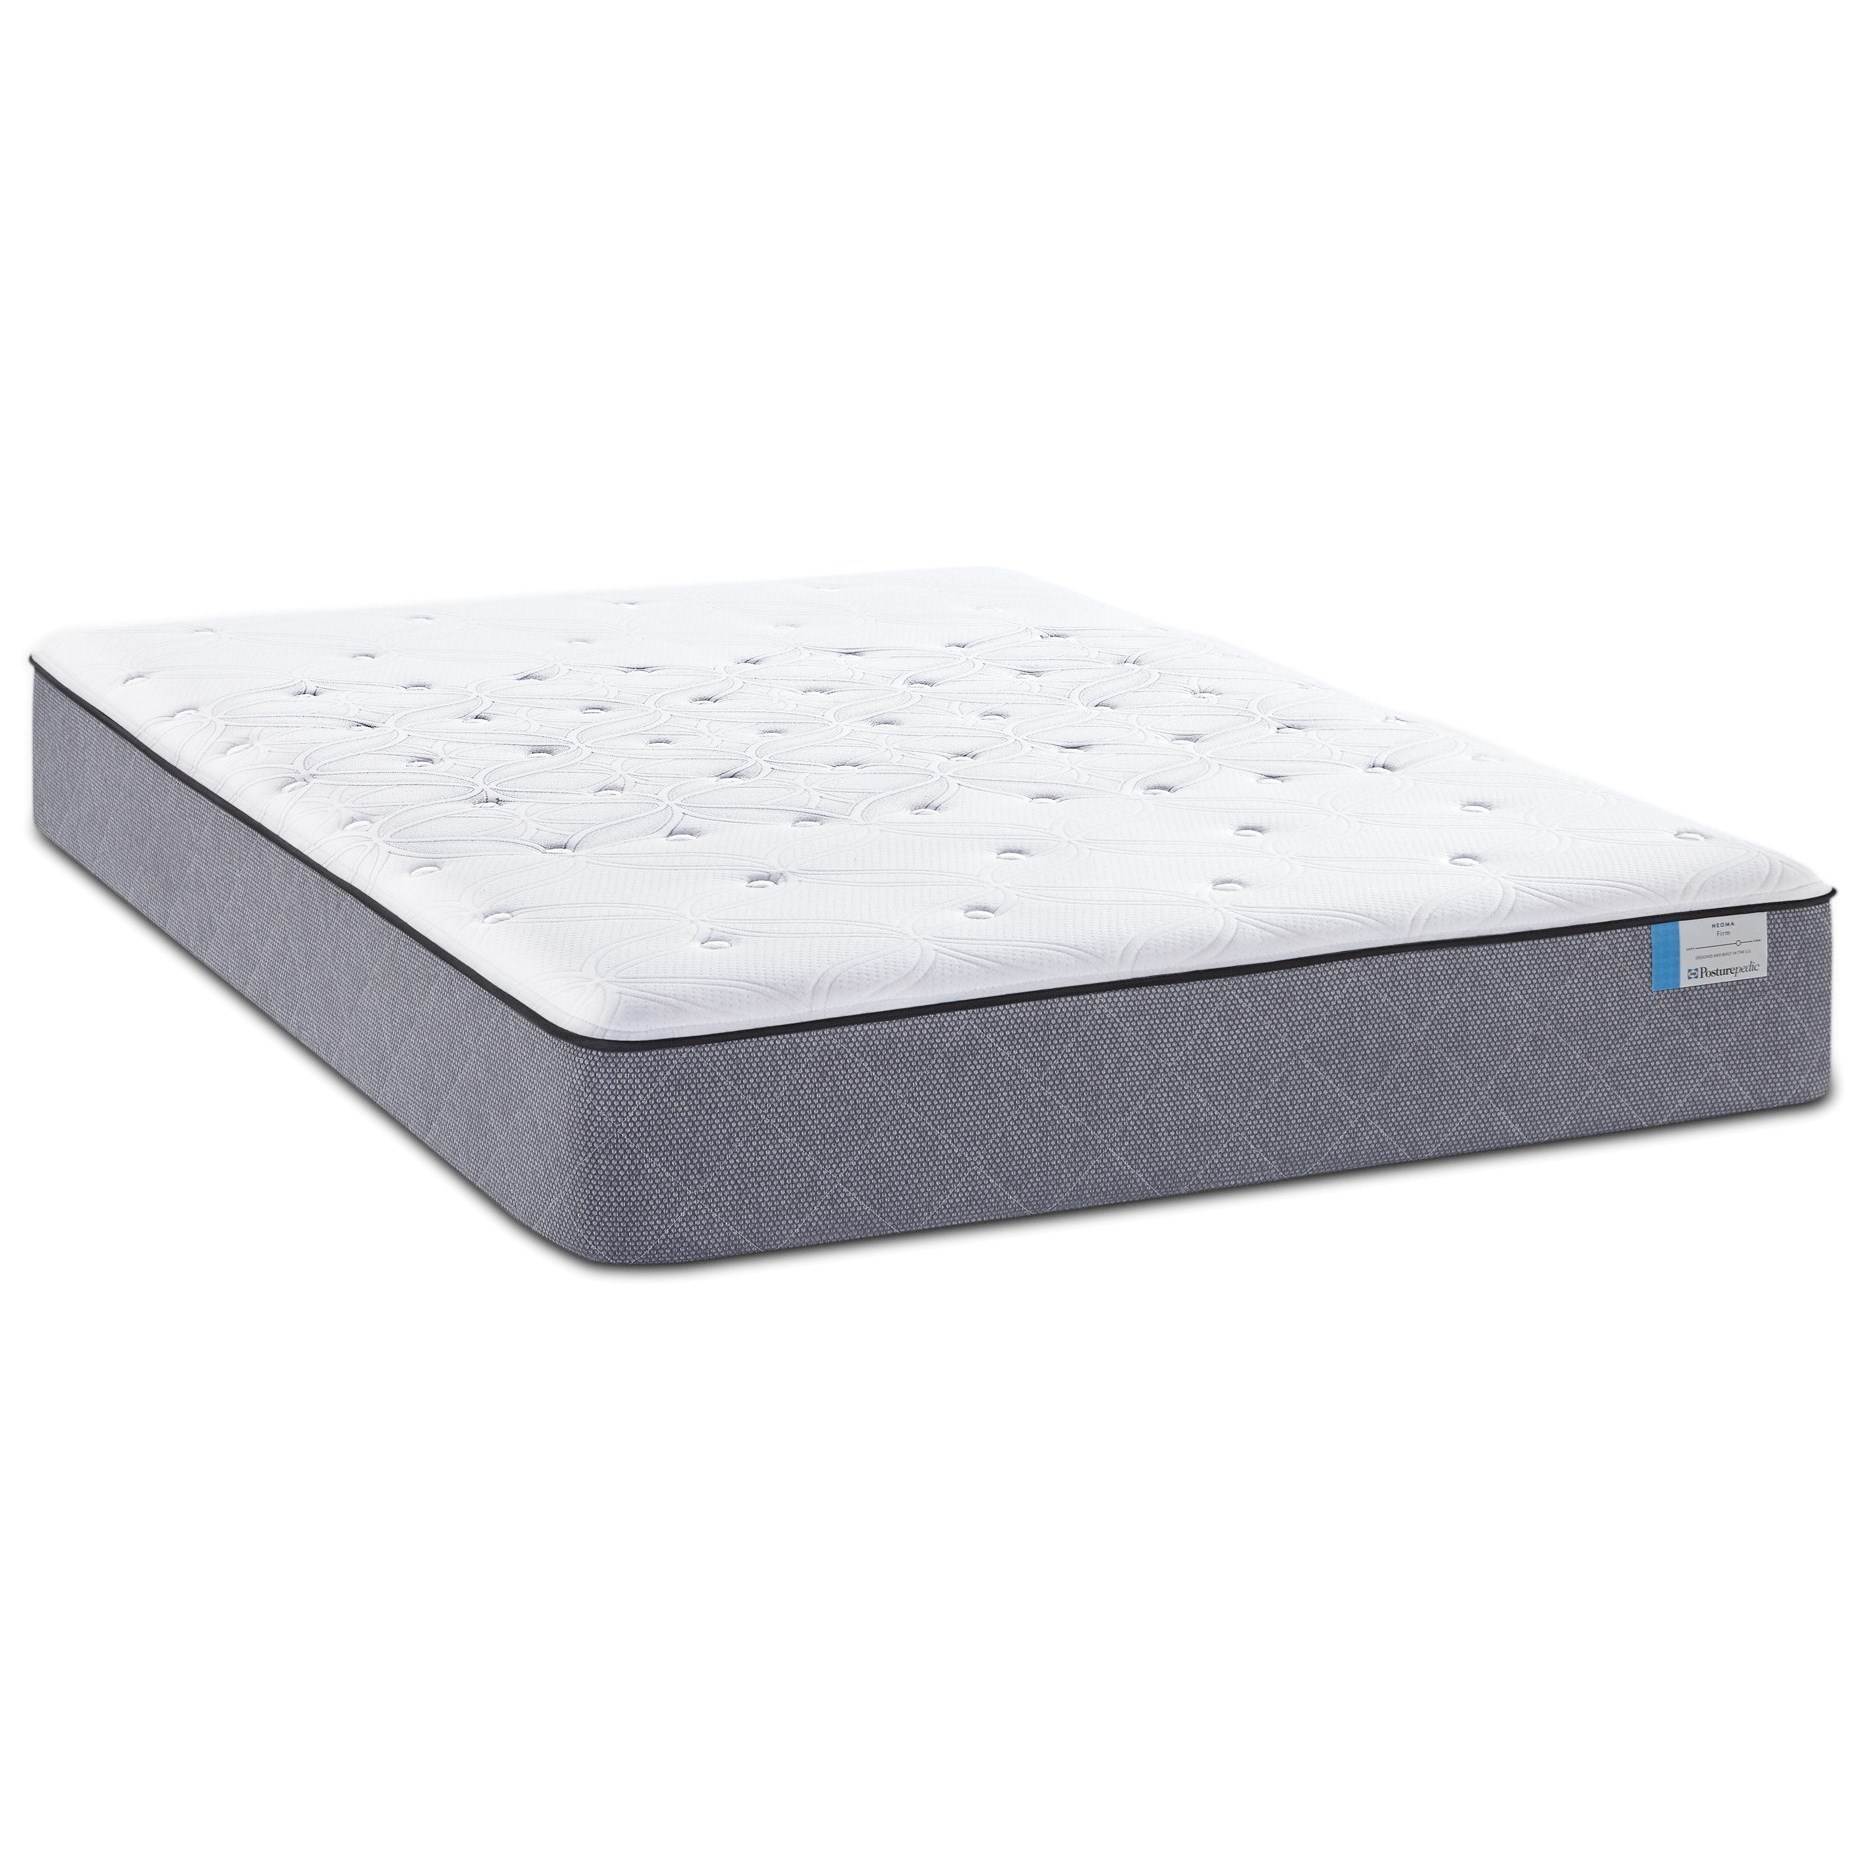 Sealy Posturepedic A2 Queen Plush Mattress - Item Number: PlushTT-Q